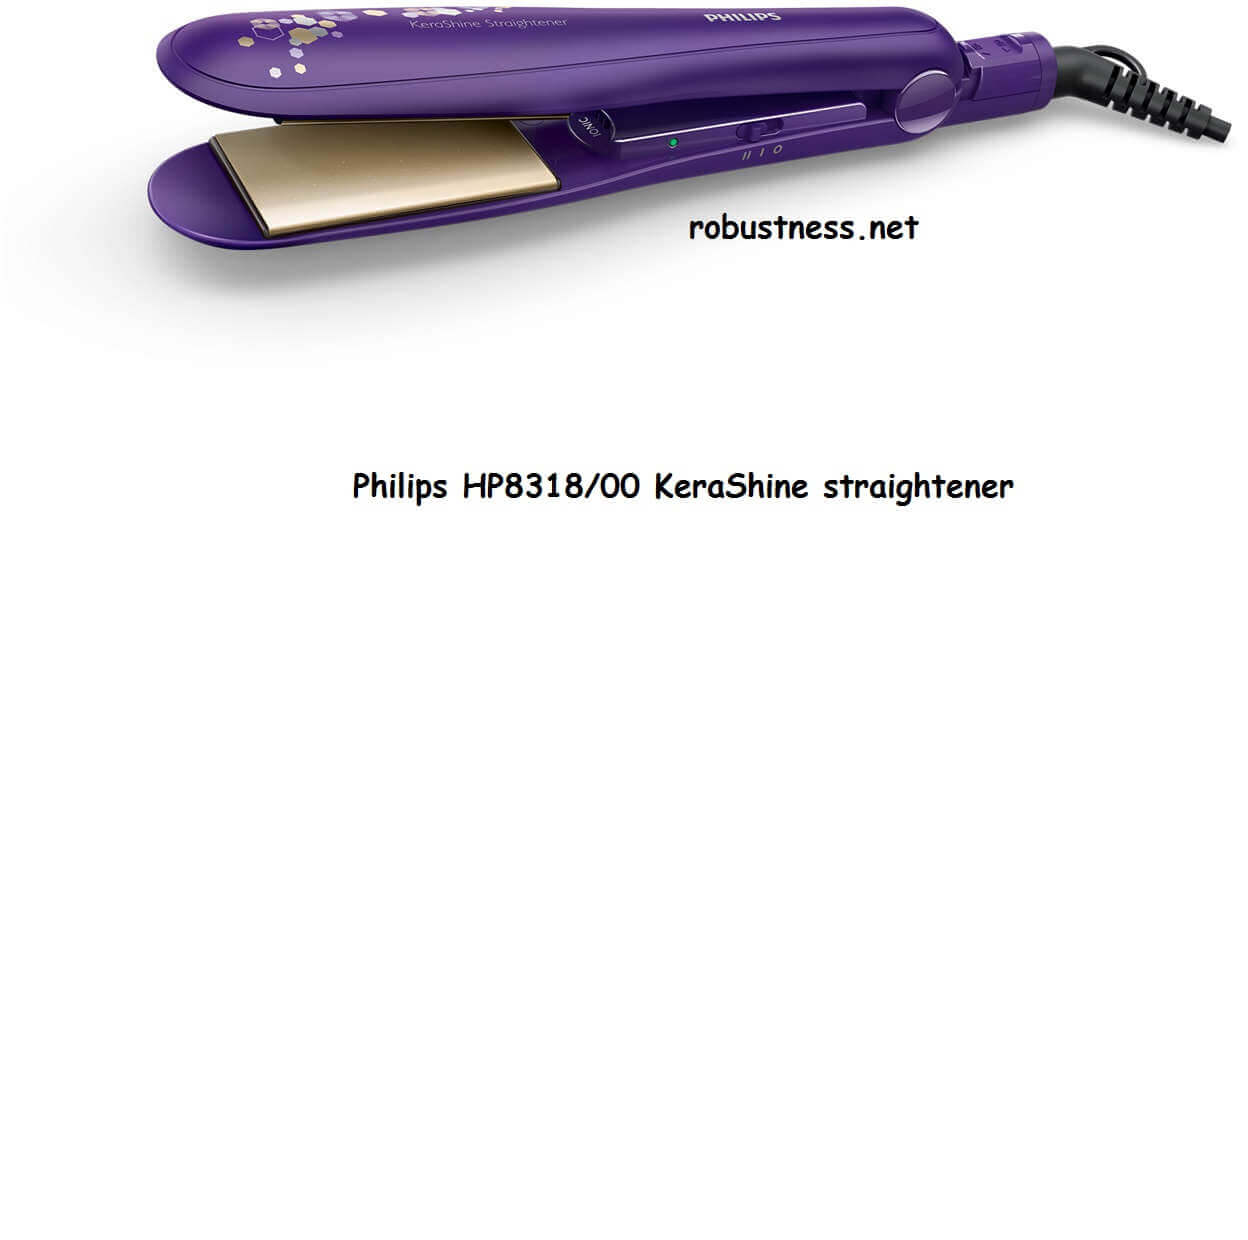 best philips hair straightener in india Philips HP8318